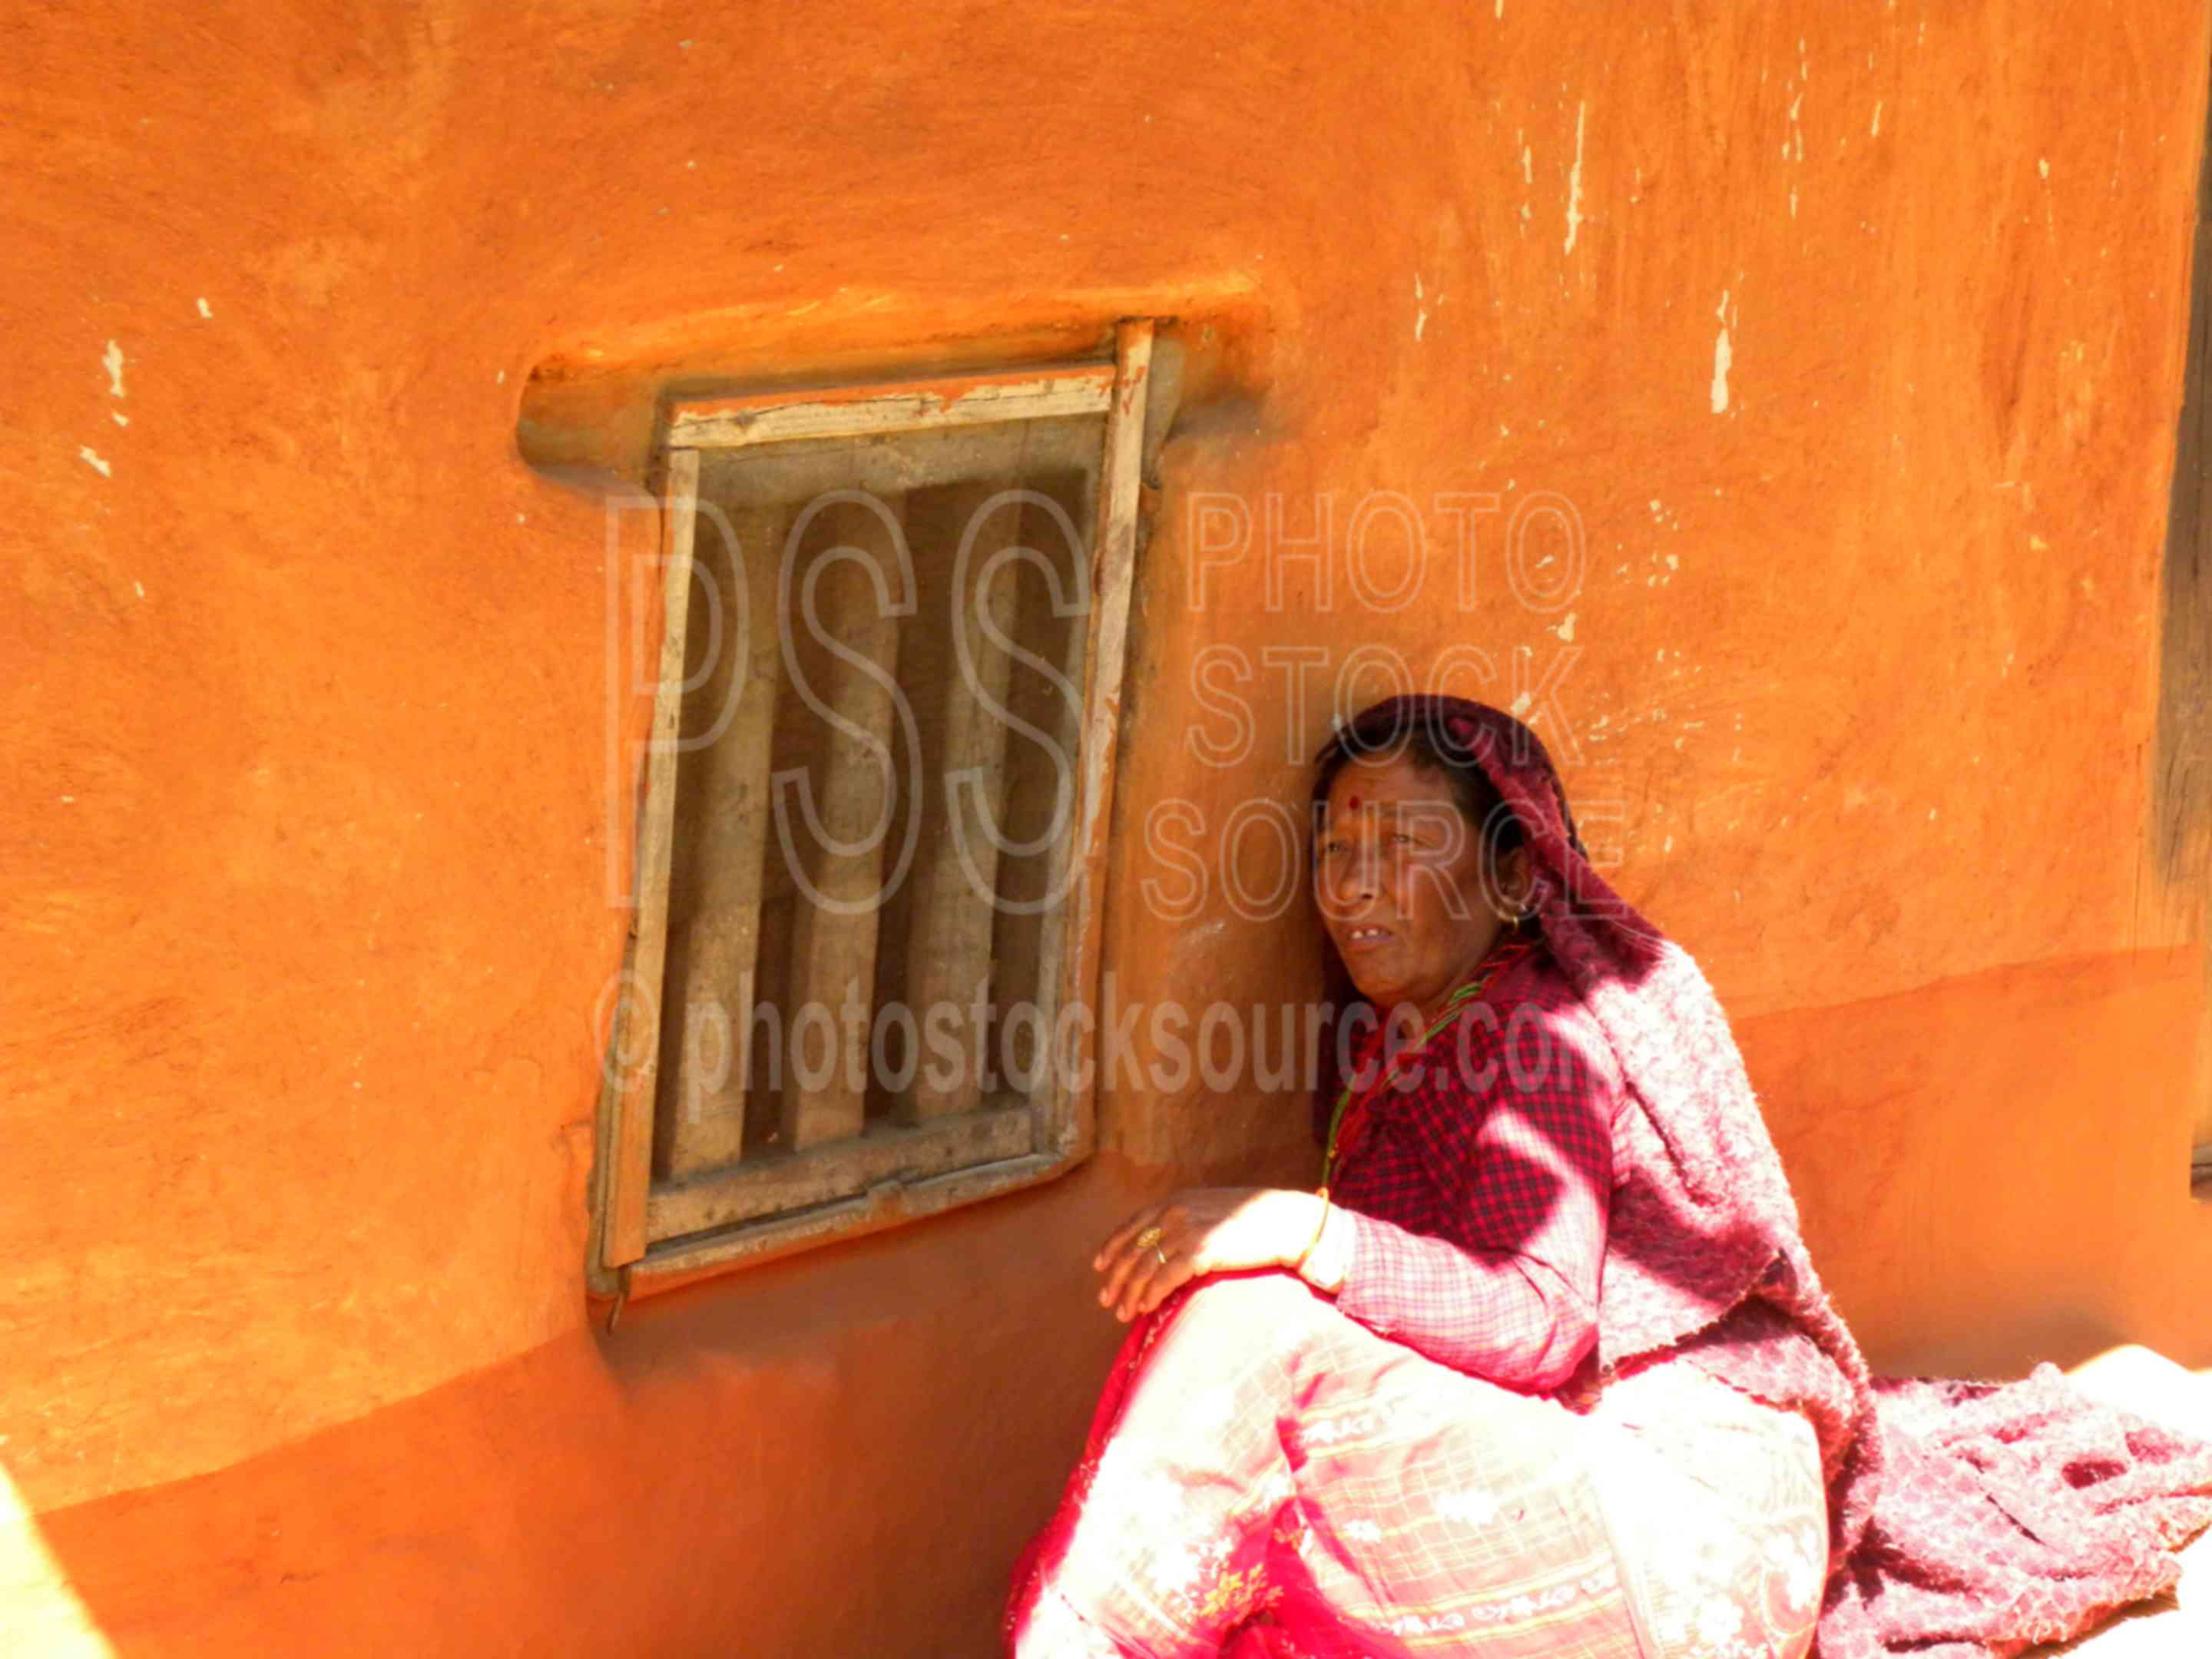 Woman in front of House,farm,farm house,woman,highlands